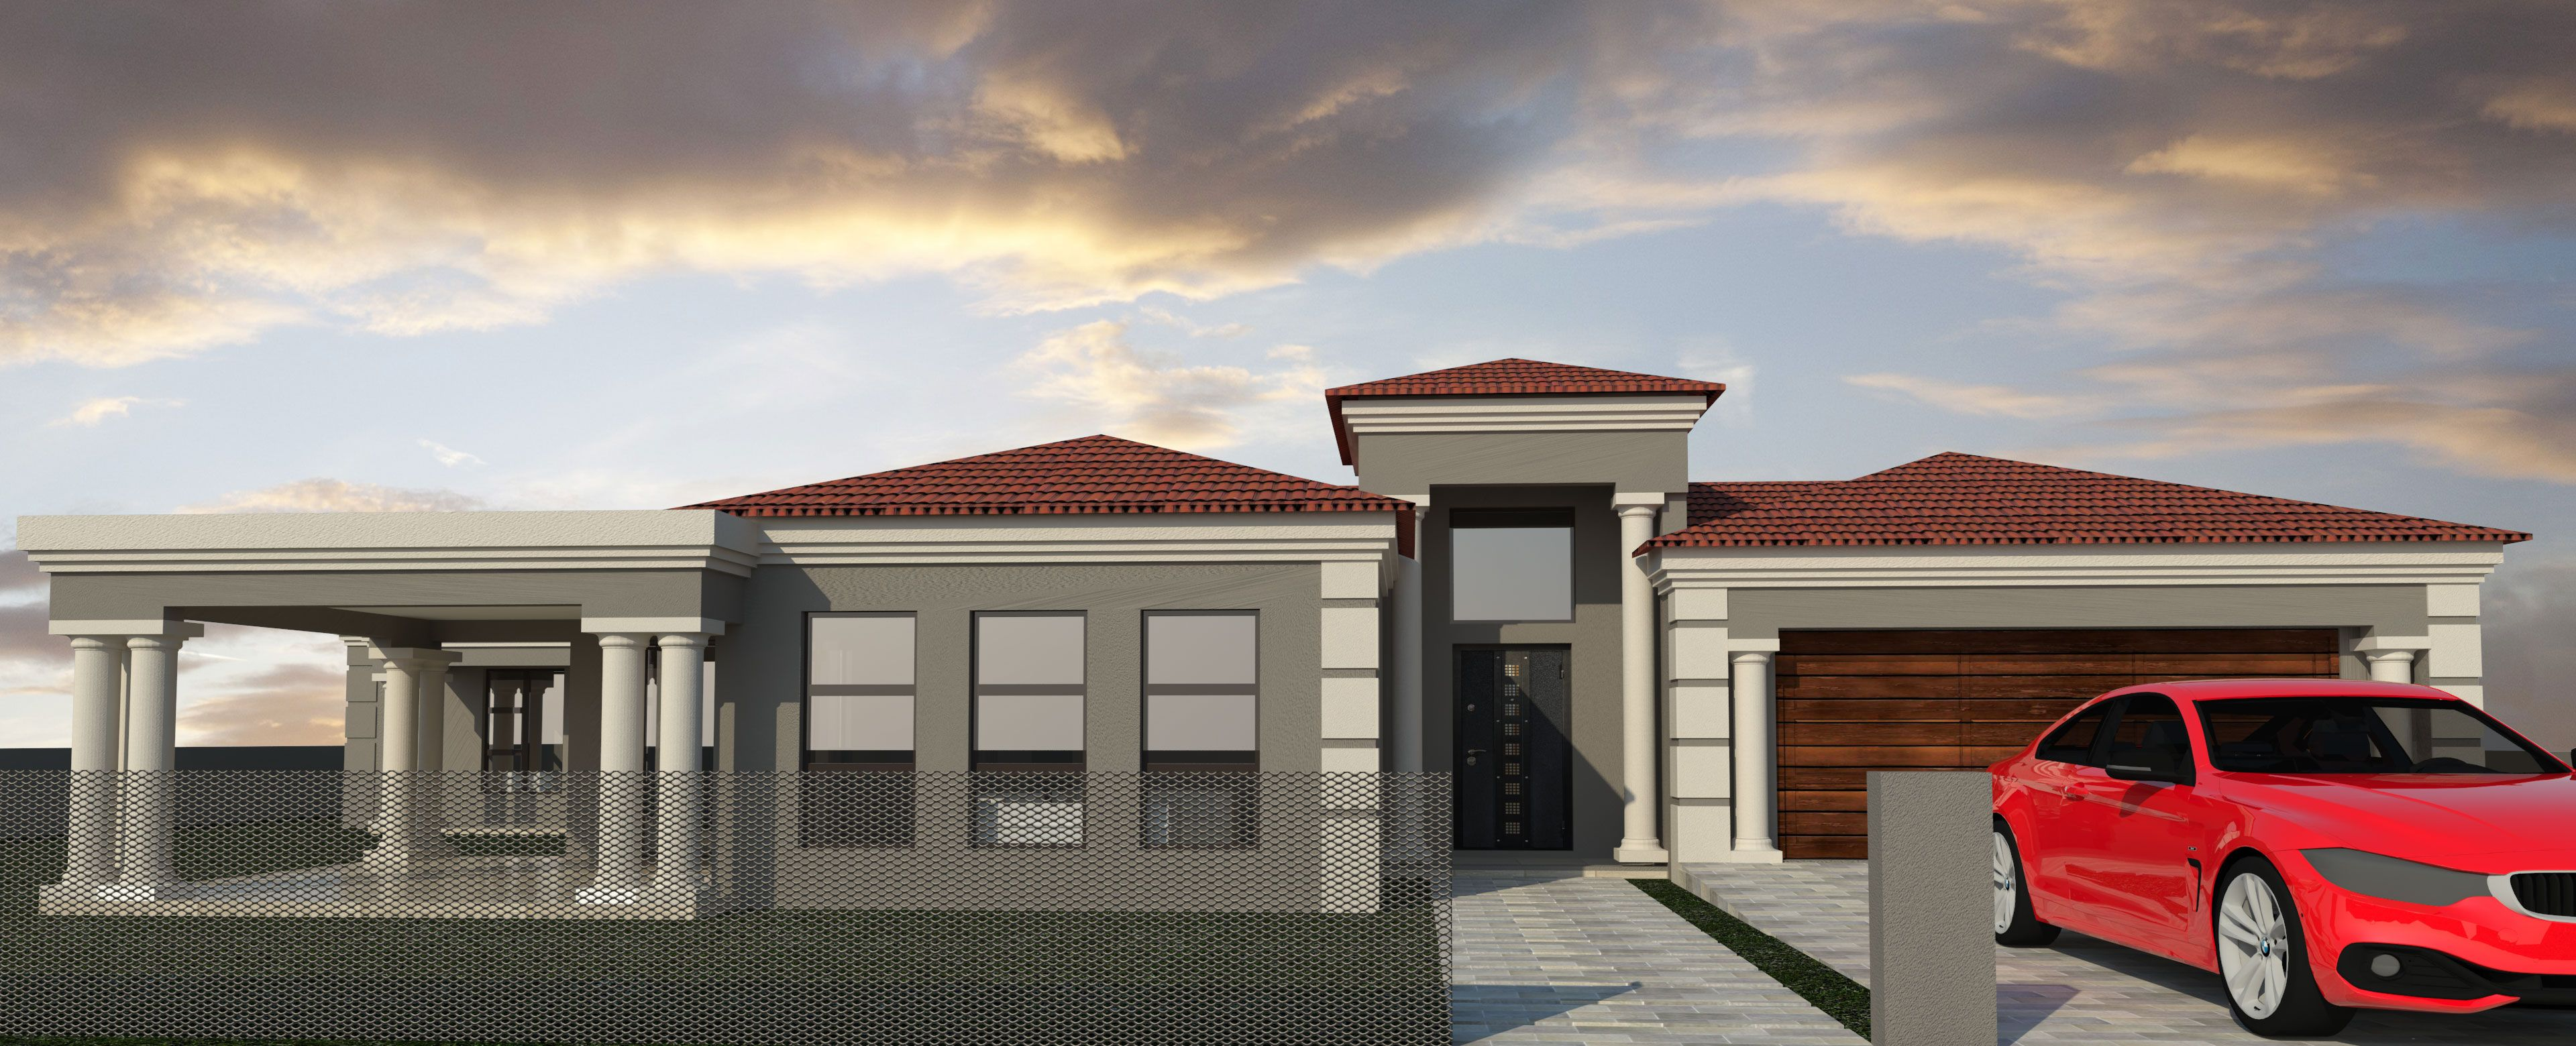 3 Bedroom House Plan BLA021.1S My house plans, House